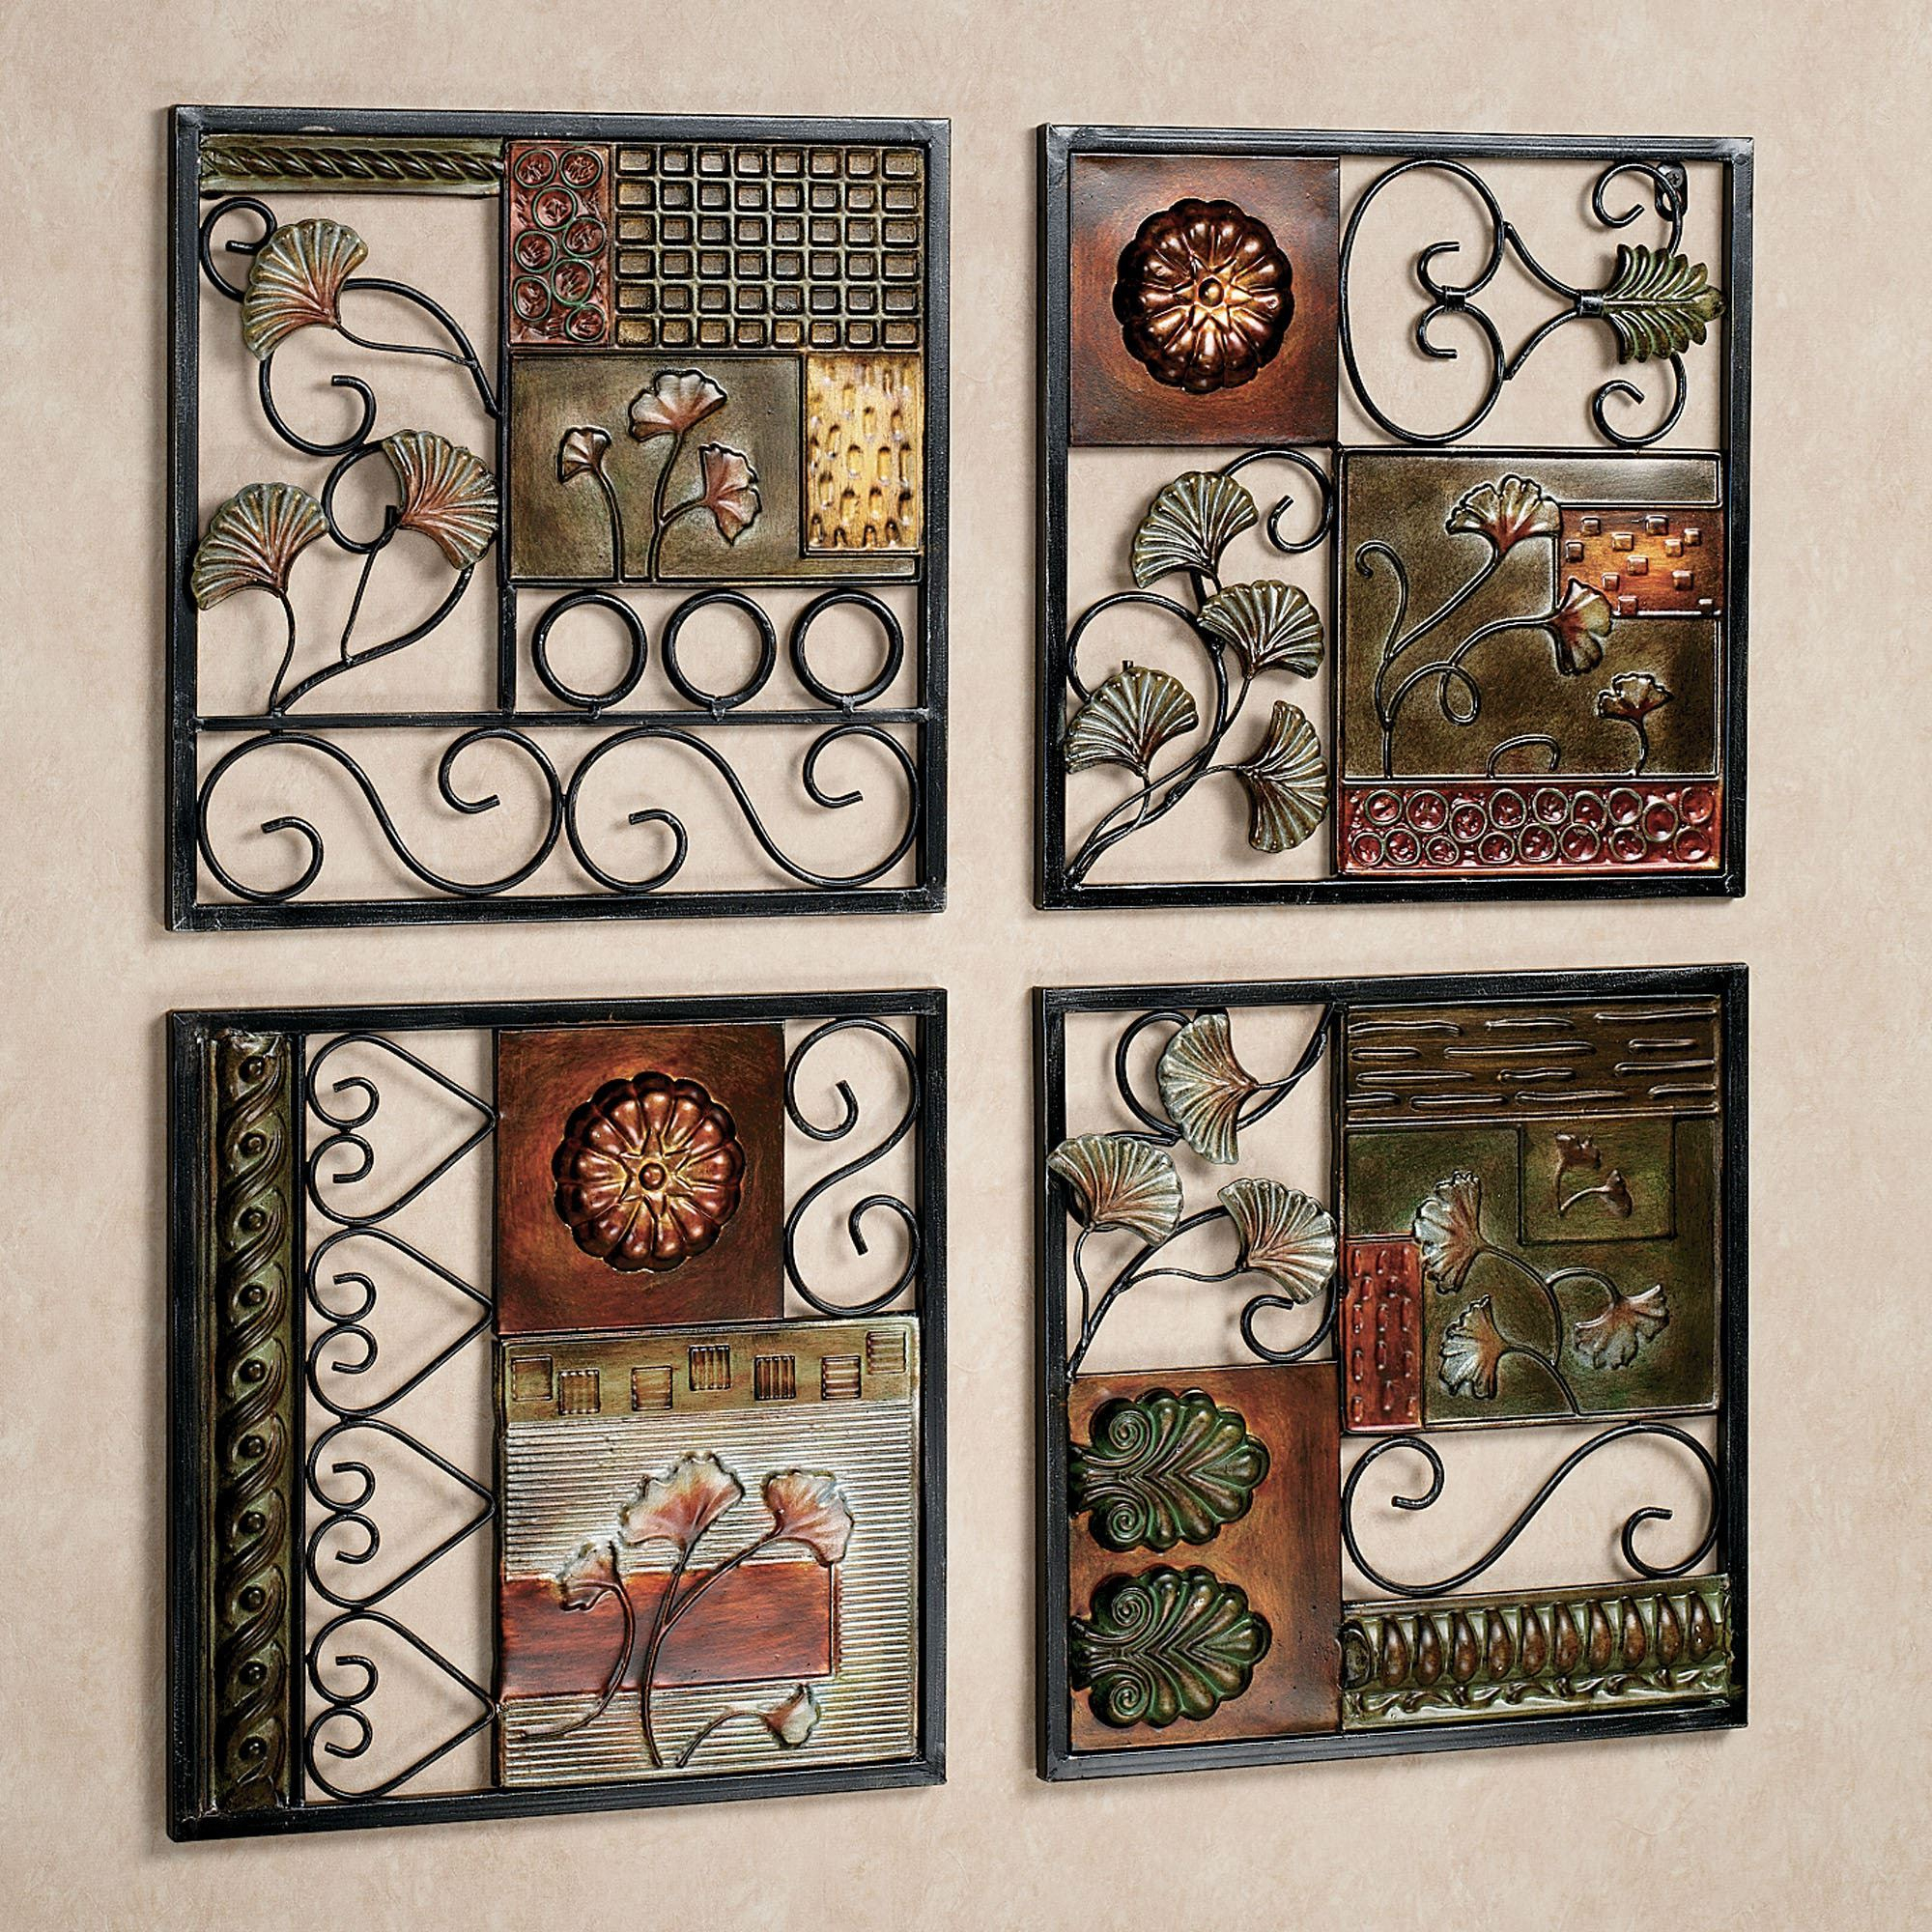 Dusk And Dawn Metal Wall Art Set Regarding 4 Piece Metal Wall Plaque Decor Sets (View 3 of 30)